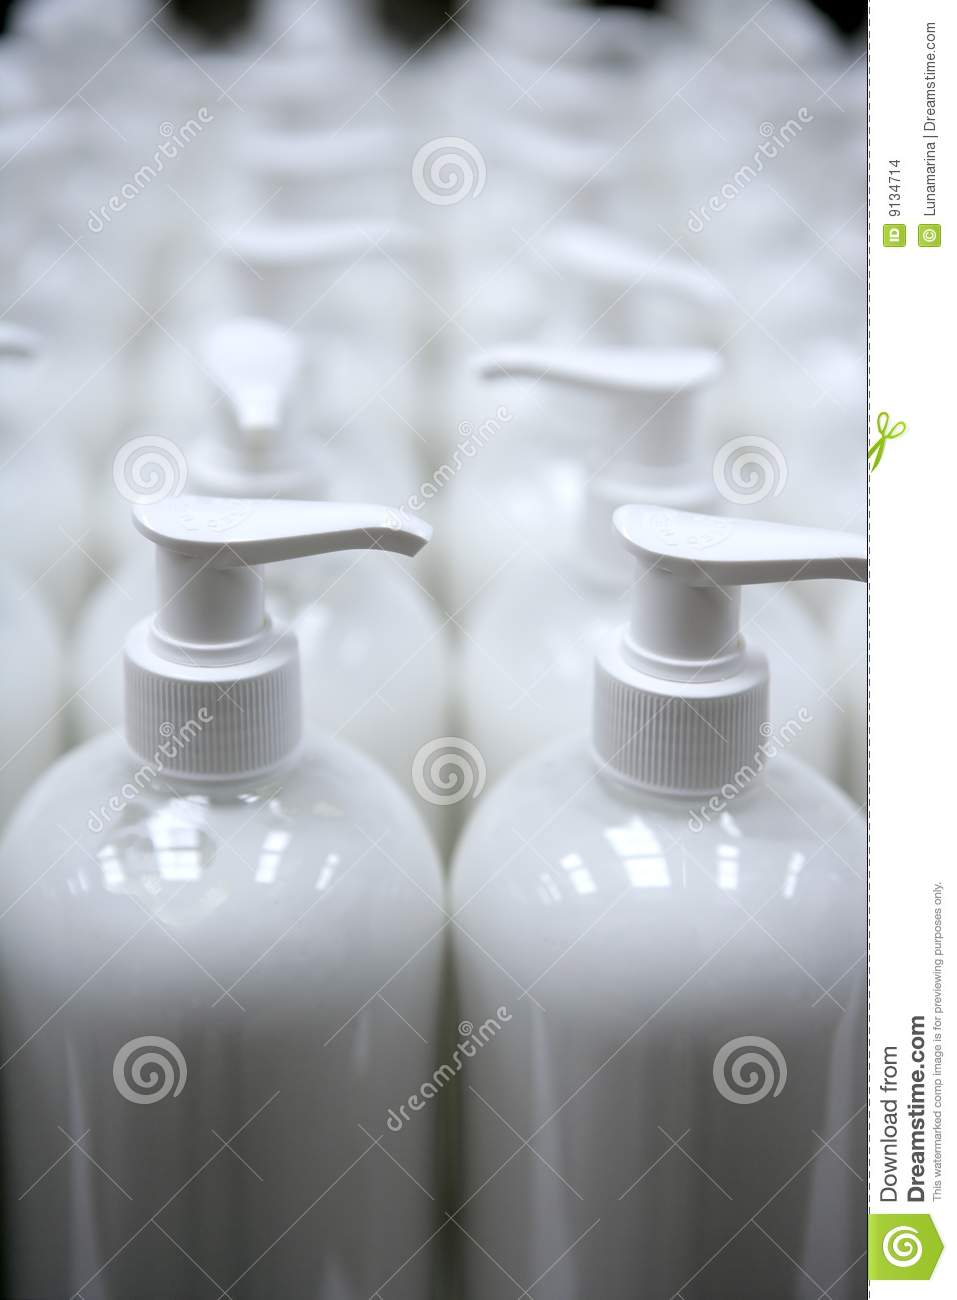 White Plastic Soap Bottles In Rows Assembly Line Stock